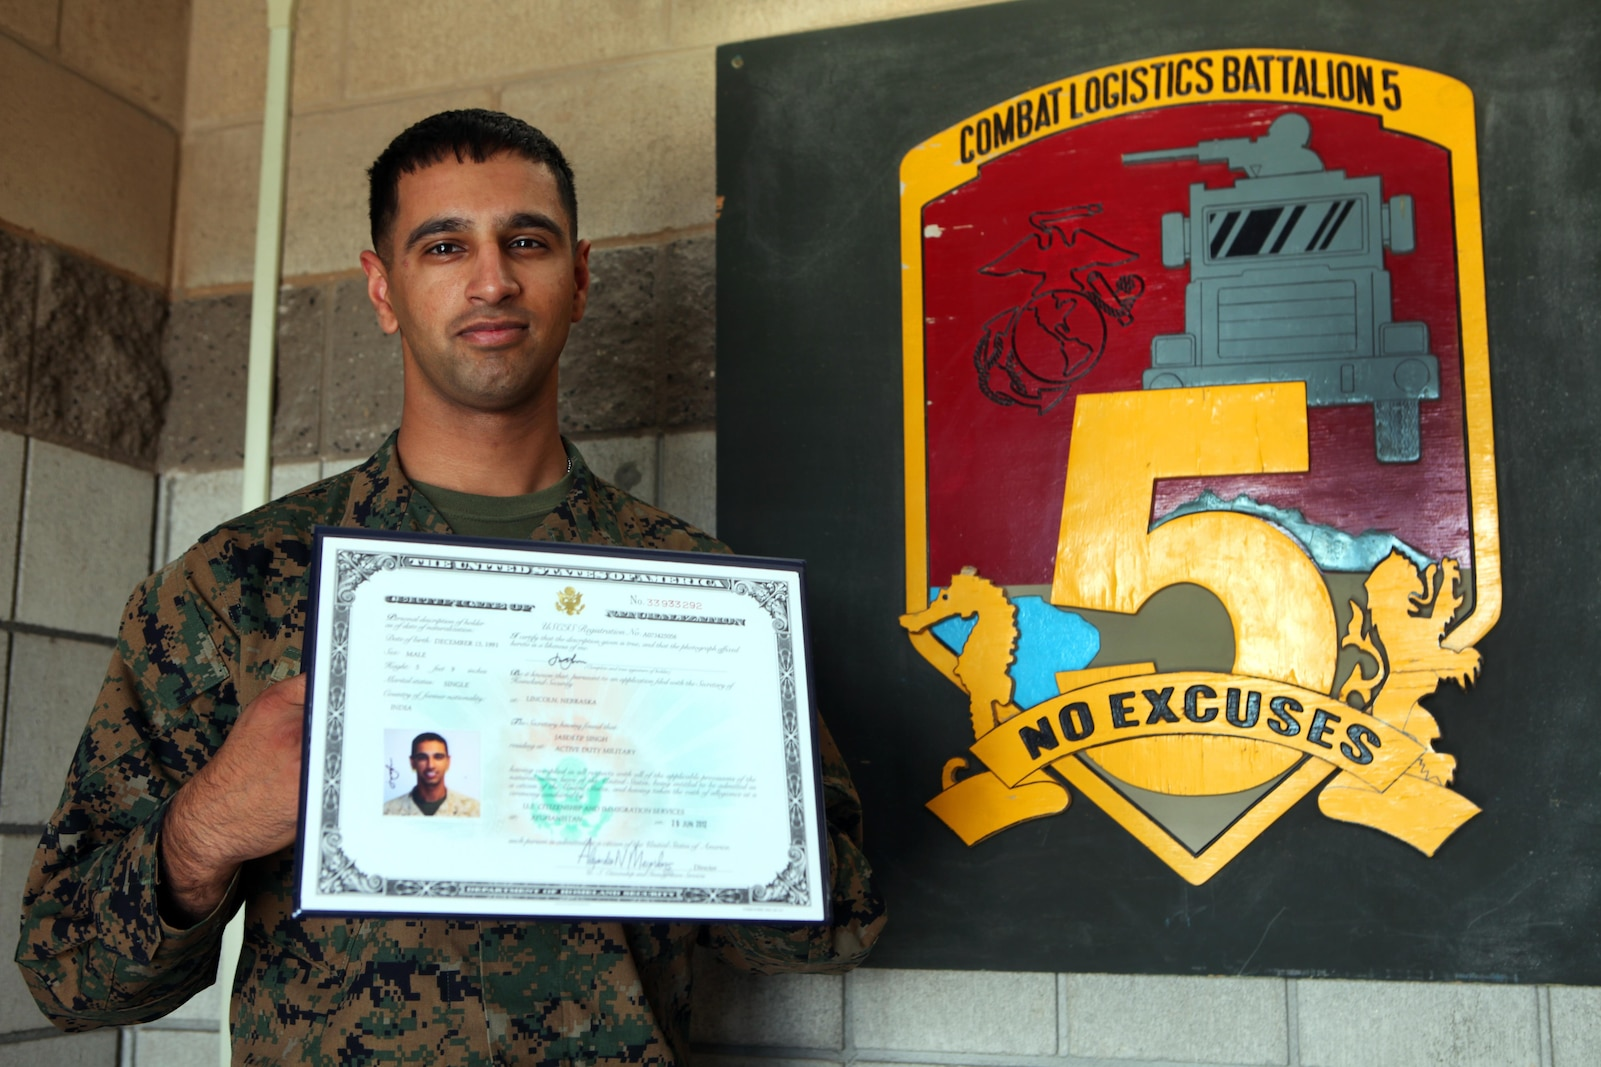 Corporal Jasdeep Singh, supply administrative chief, Combat Logistics Regiment 5, 1st Marine Logistics Group, displays his certificate of naturalization in front of the CLB-5 logo aboard Camp Pendleton, Calif., Feb. 4, 2014. Singh became a US citizen while serving in Afghanistan in 2012.